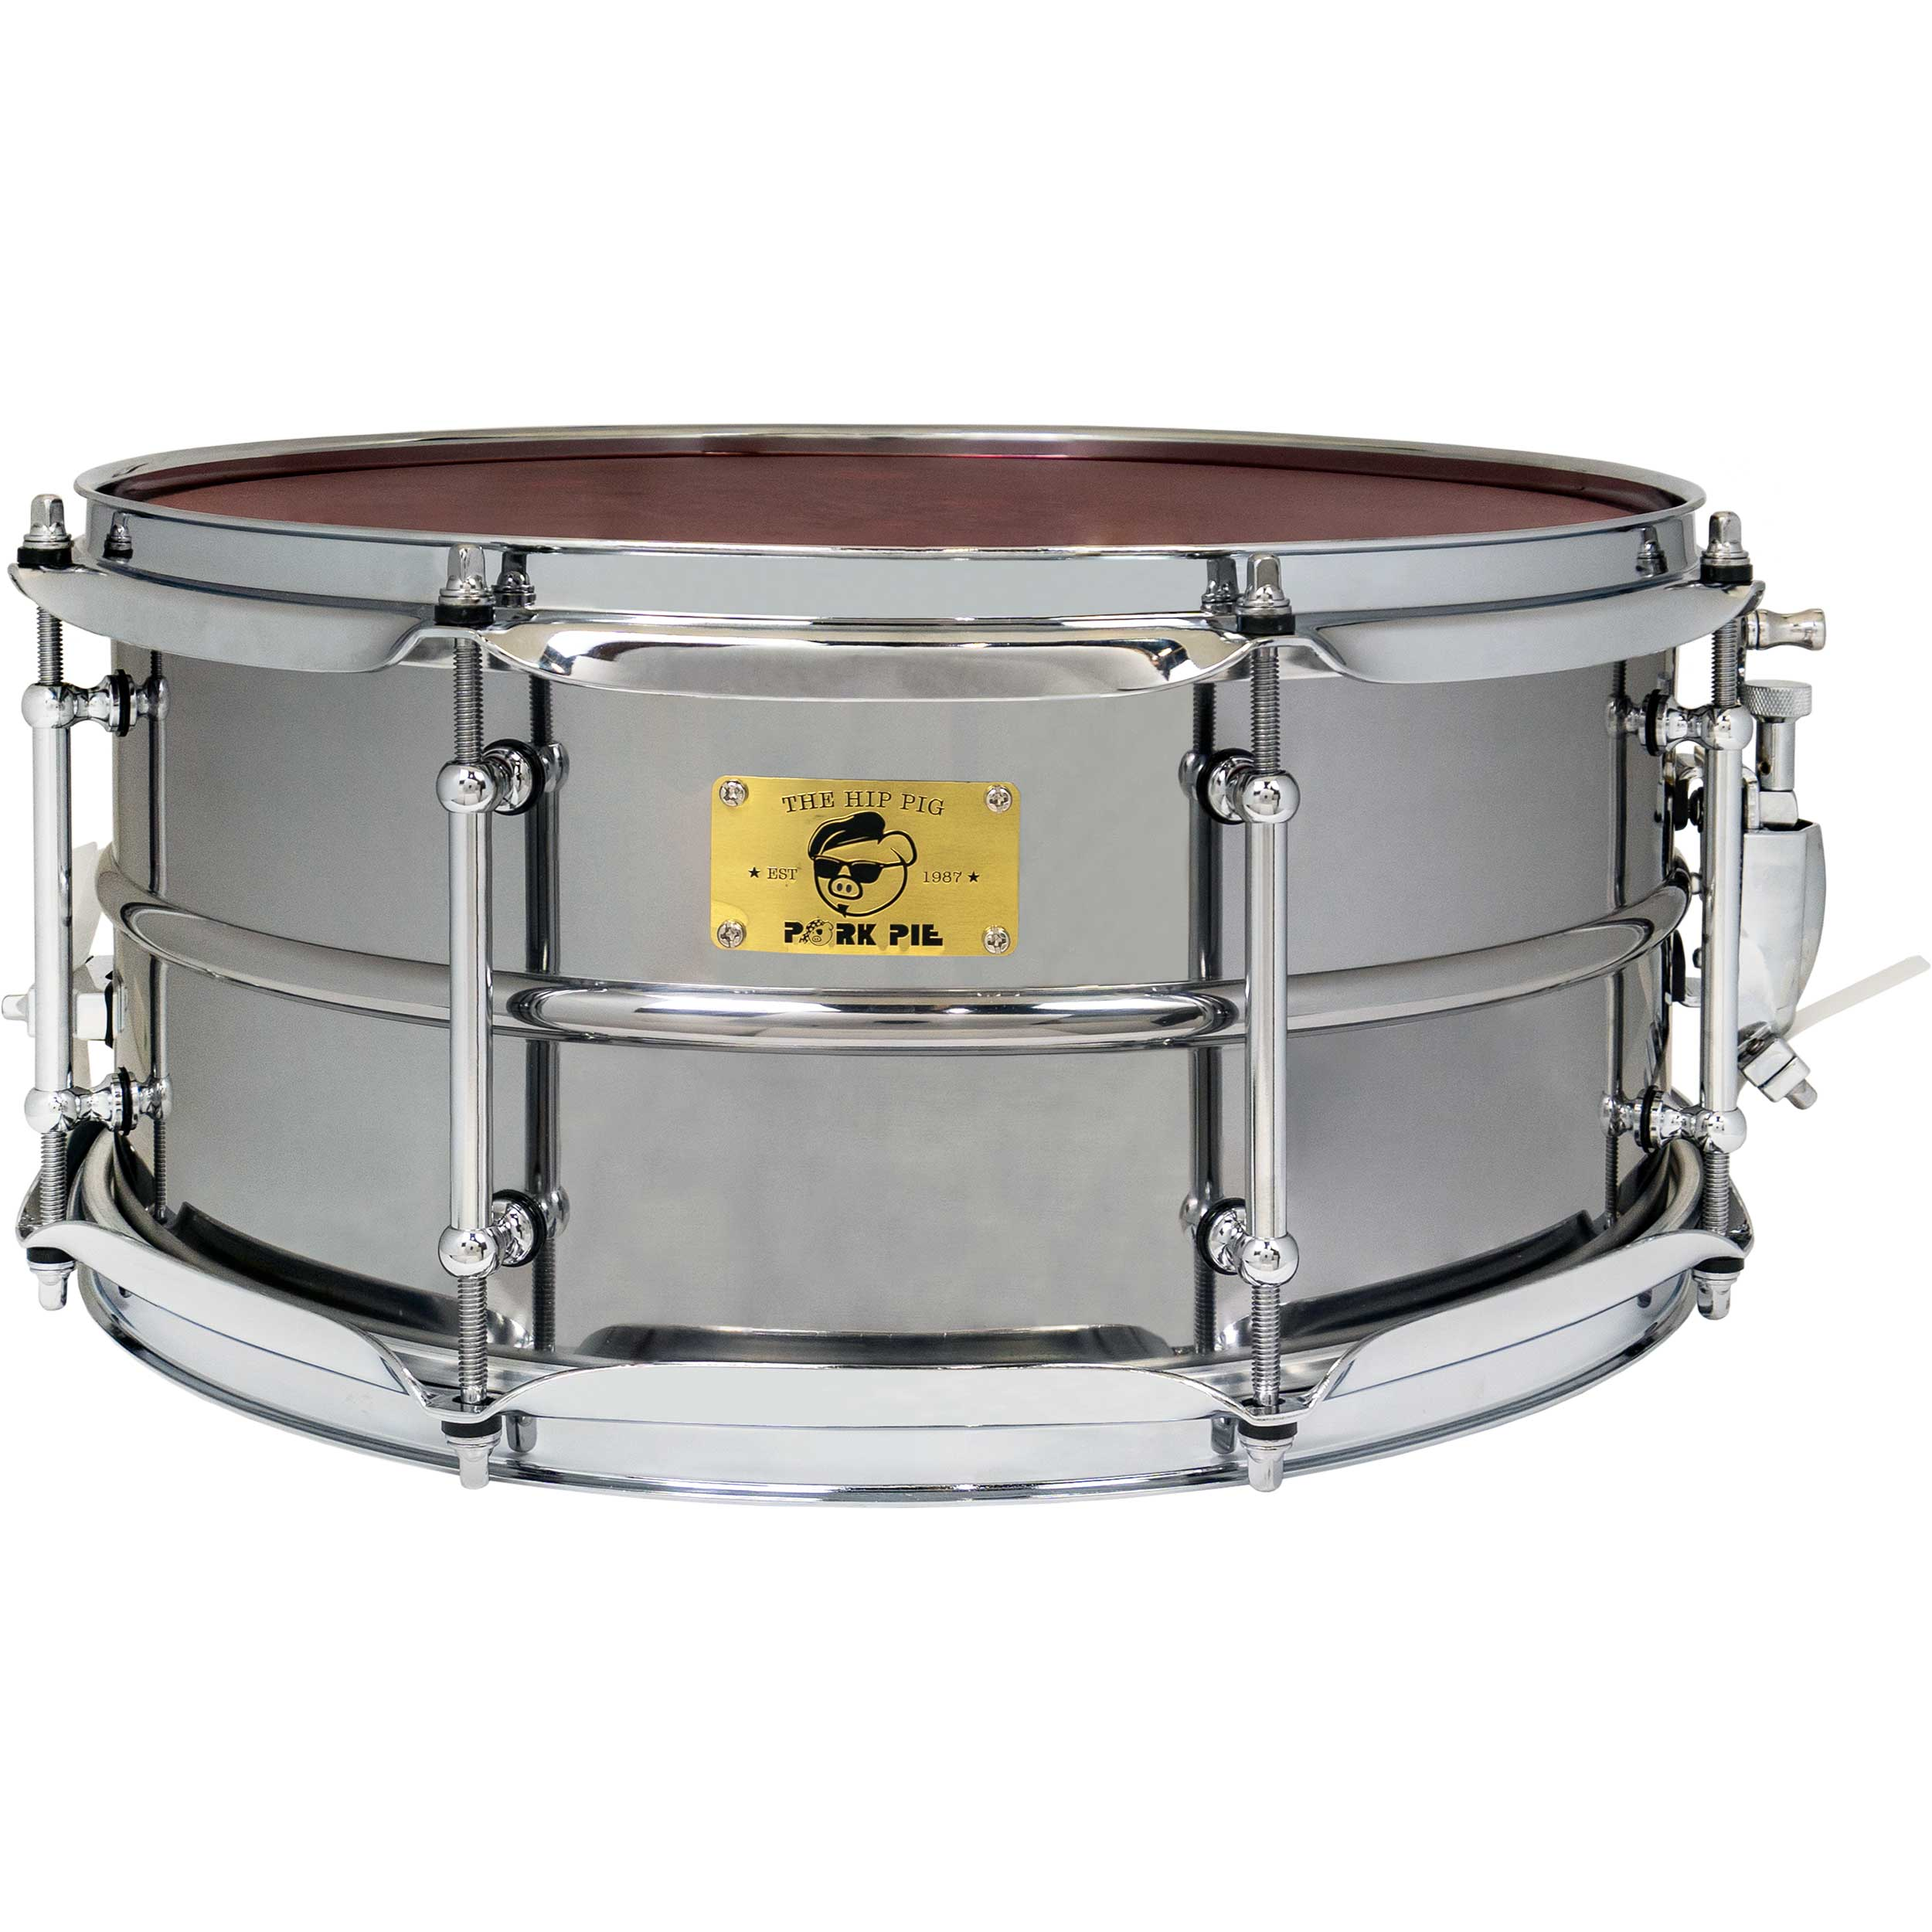 "Pork Pie Percussion 6.5"" x 14"" Pig Iron Snare Drum in Polished Finish"